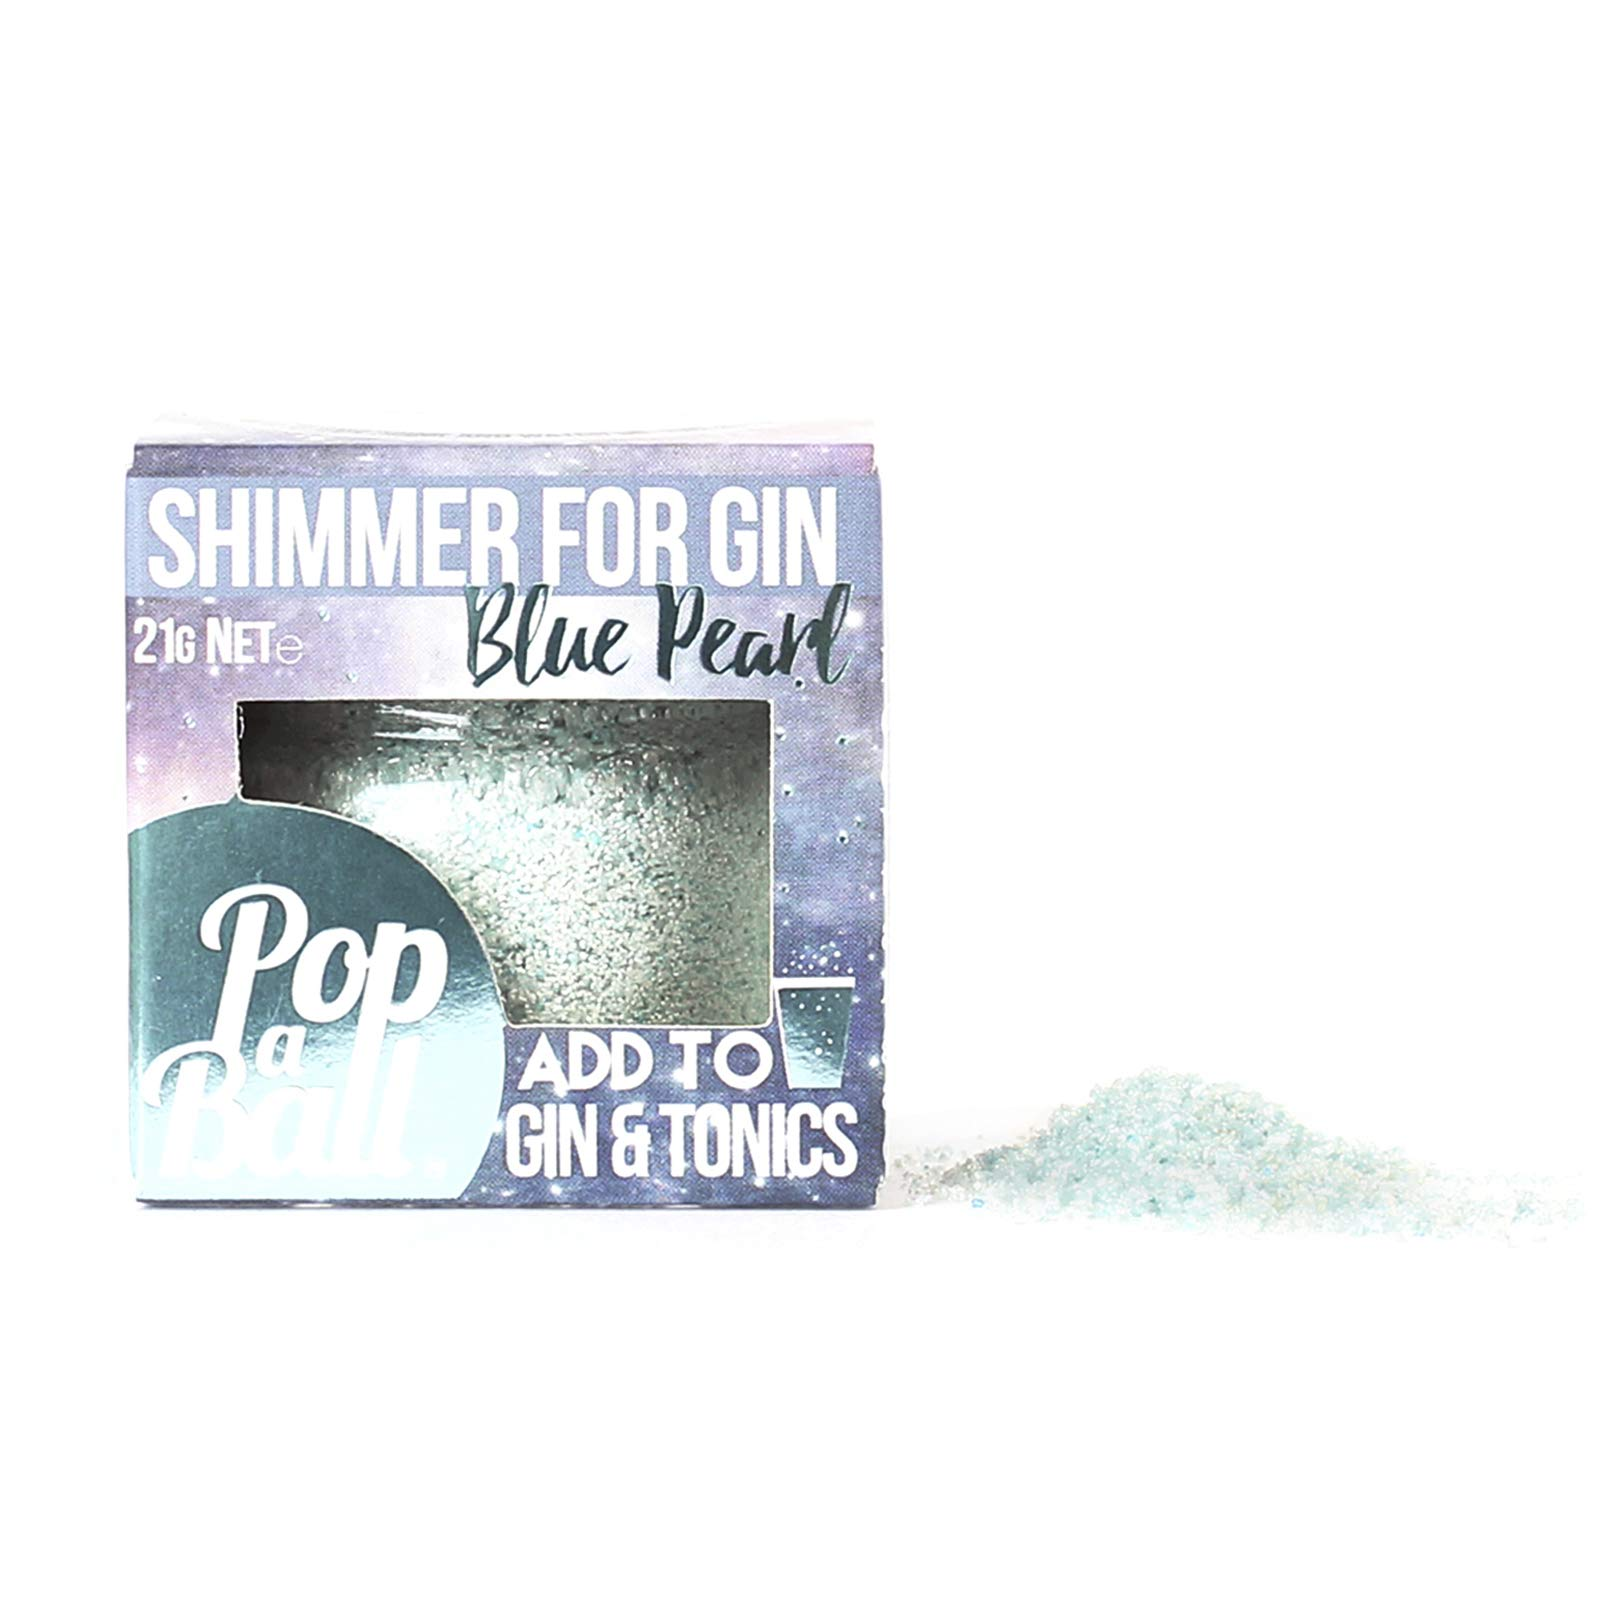 Popaball Drink Shimmer Blue Pearl Blueberry Flavour | 1 x 21 Grams | Prosecco, Gin, Mocktail & Cocktail Making Gifts | Gift Set Ideas for Her, Hampers & Hen Parties